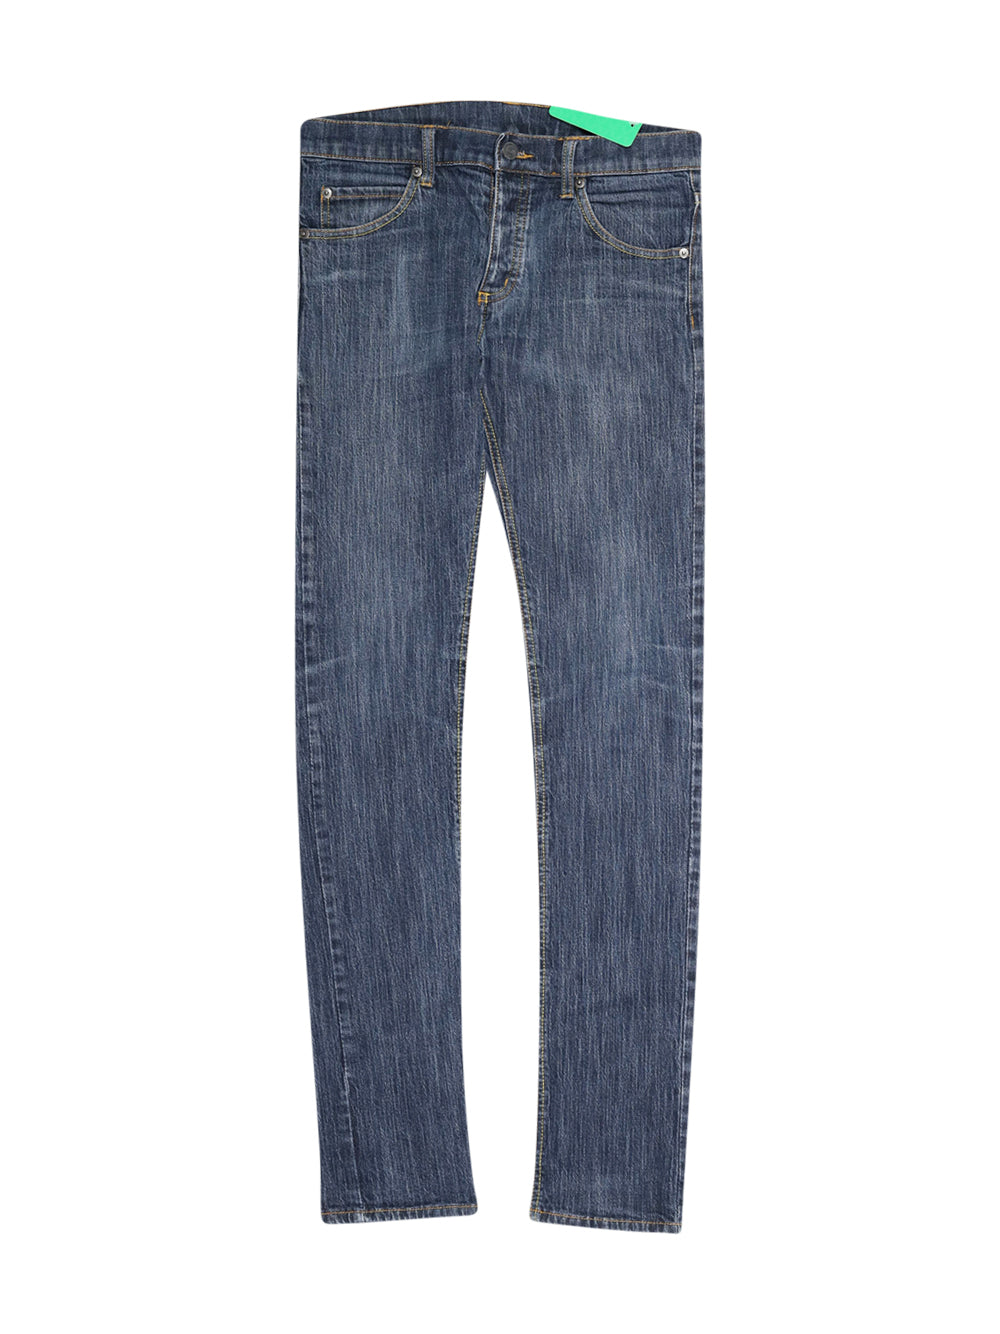 Front photo of Preloved Cheap Monday Blue Woman's trousers - size 10/M